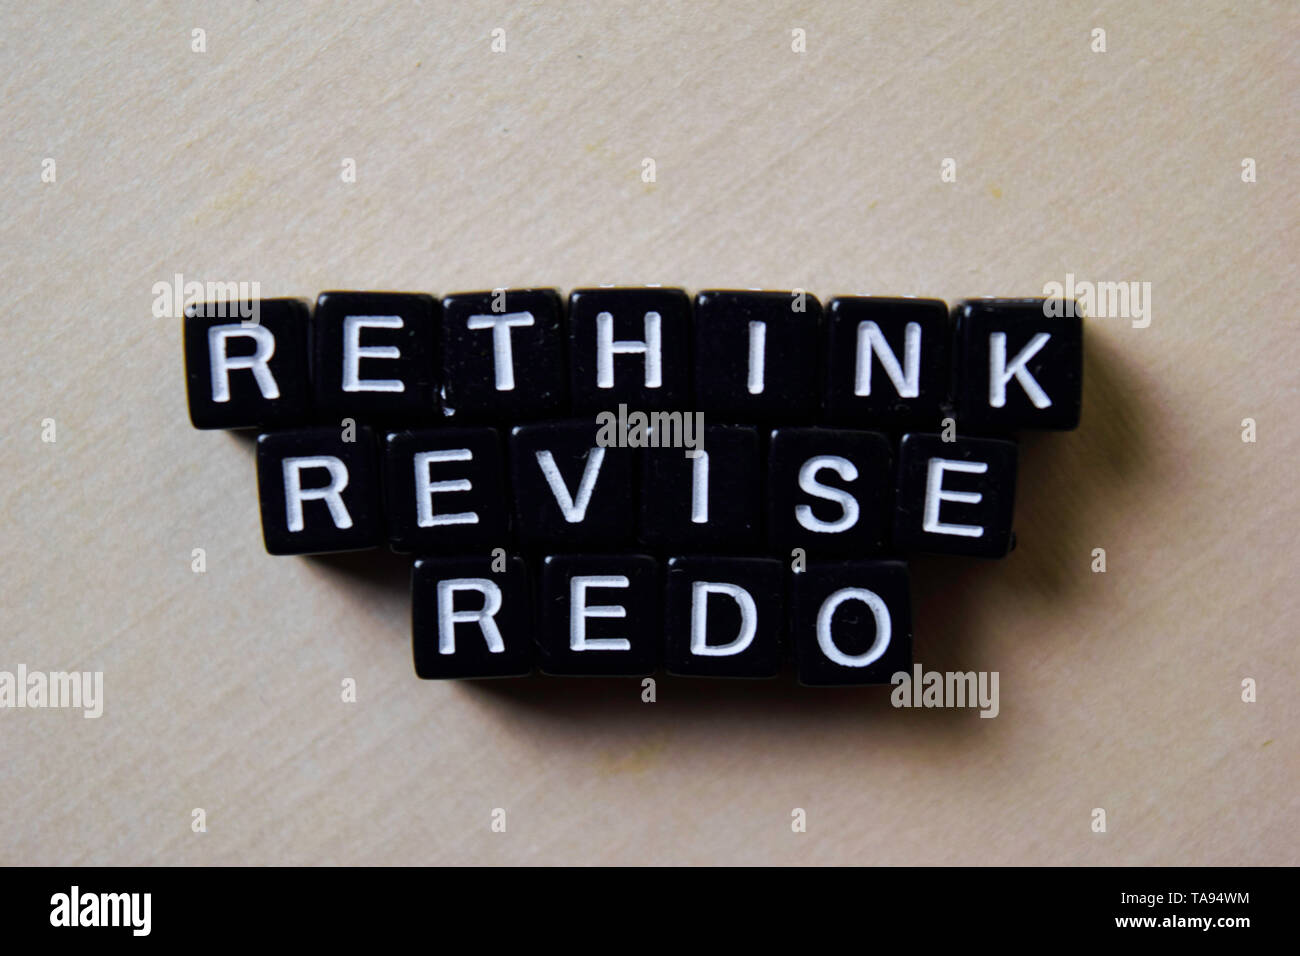 Reflect - Rethink - Redo on wooden blocks. Business and inspiration concept - Stock Image